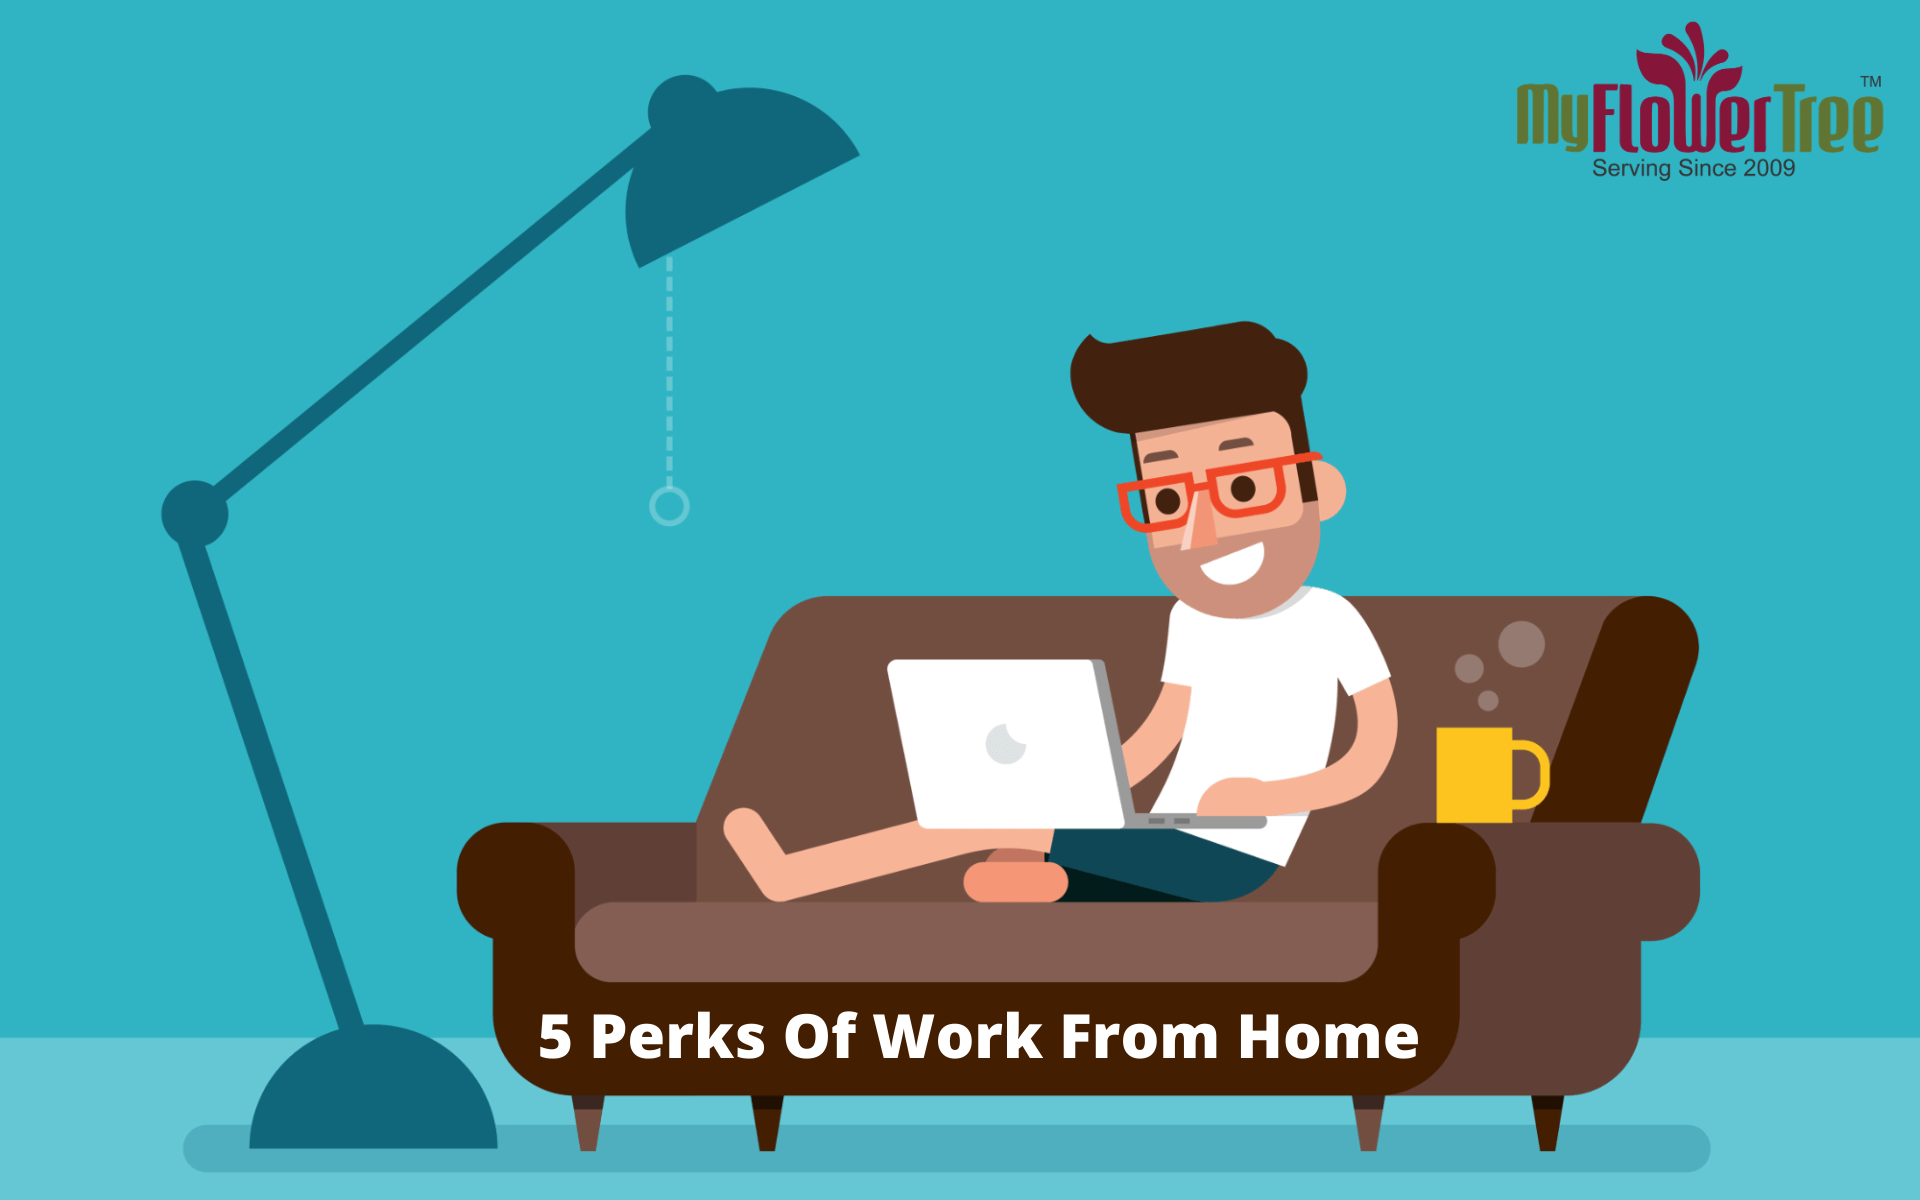 5 Perks Of Work From Home